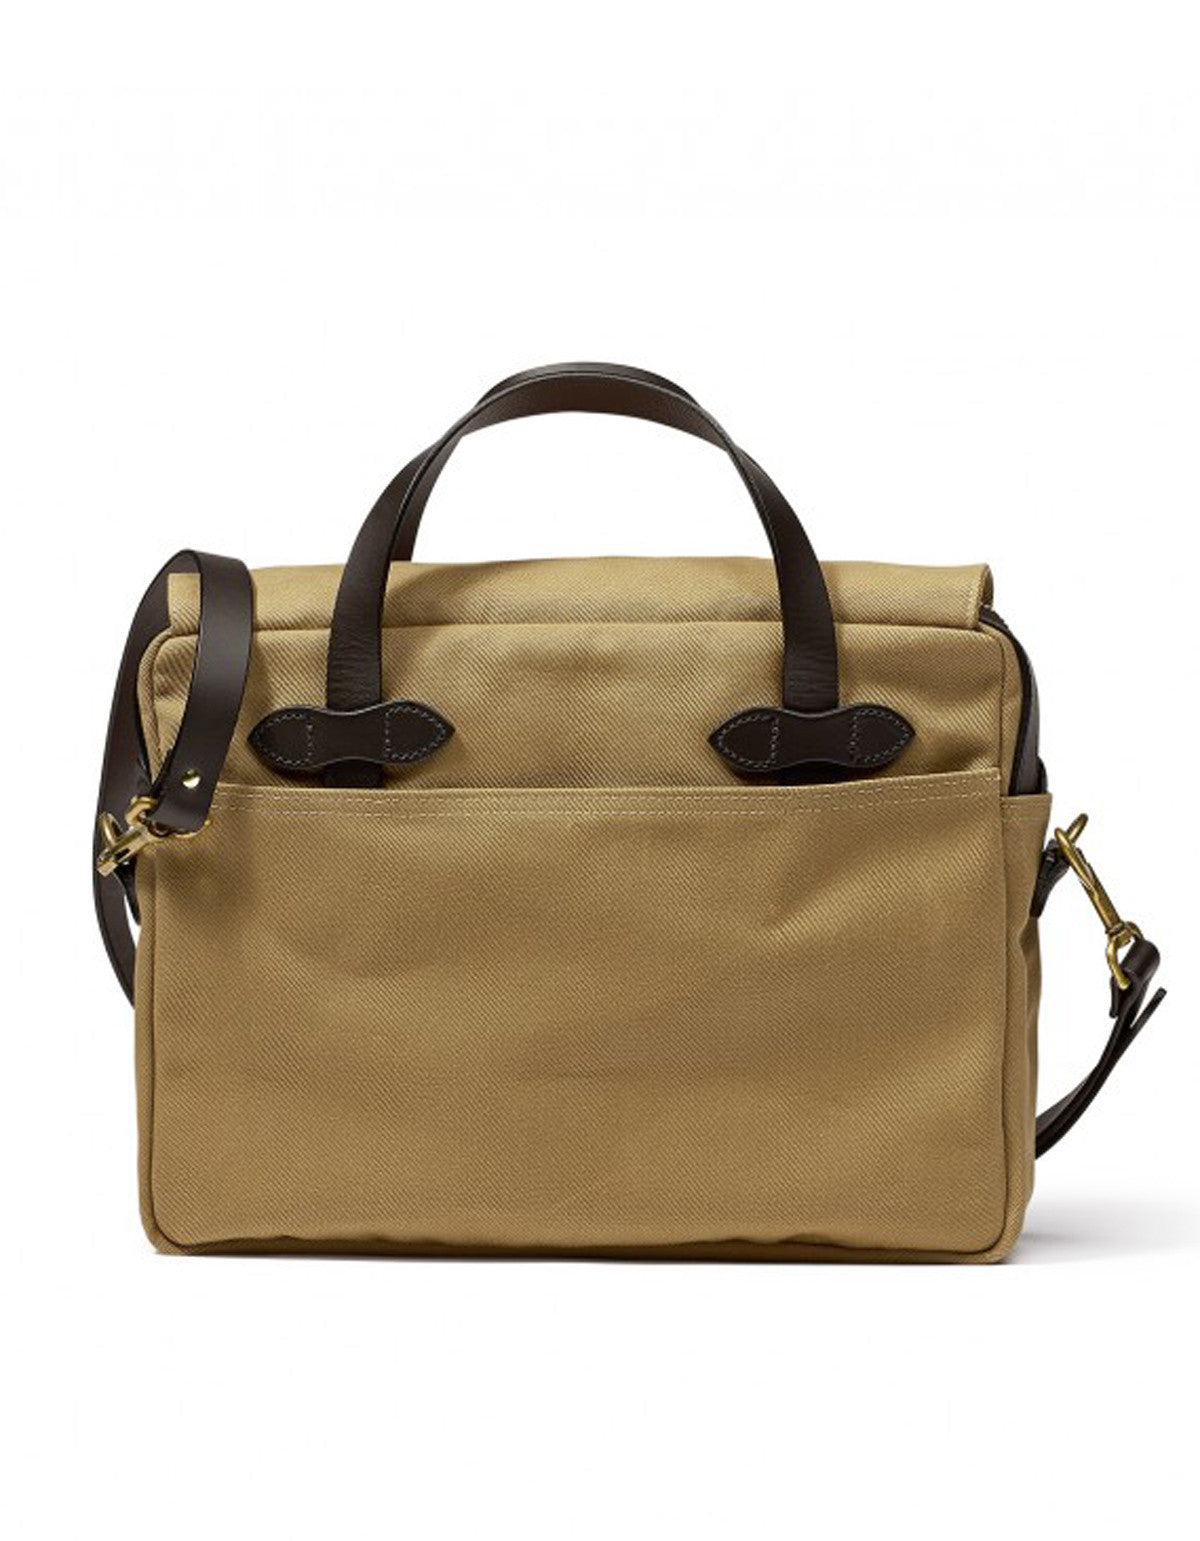 Filson Original Twill Briefcase Tan - Still Life - 2